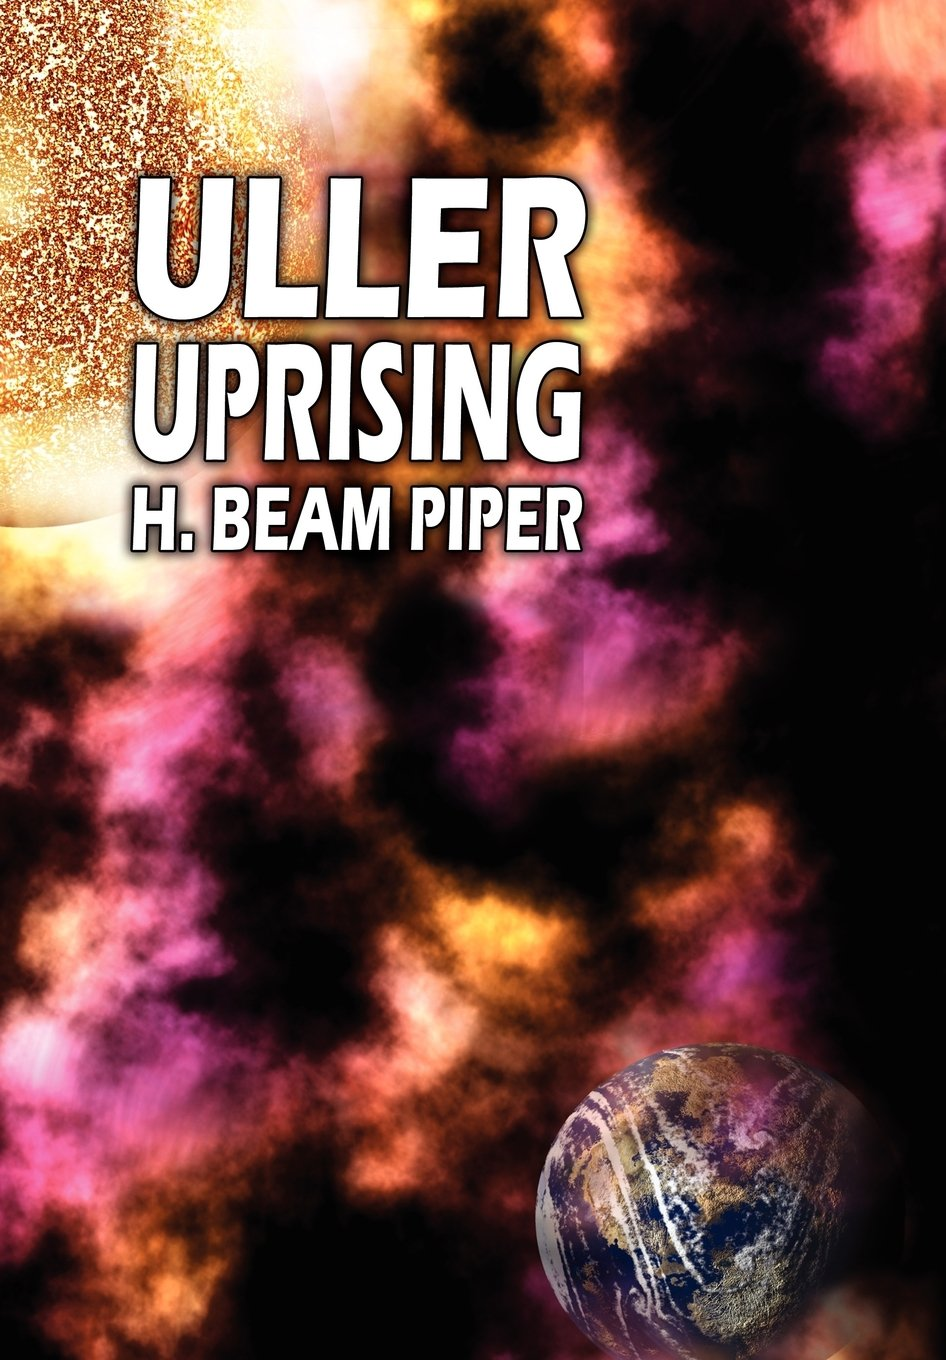 Image - Uller Uprising by H. Beam Piper